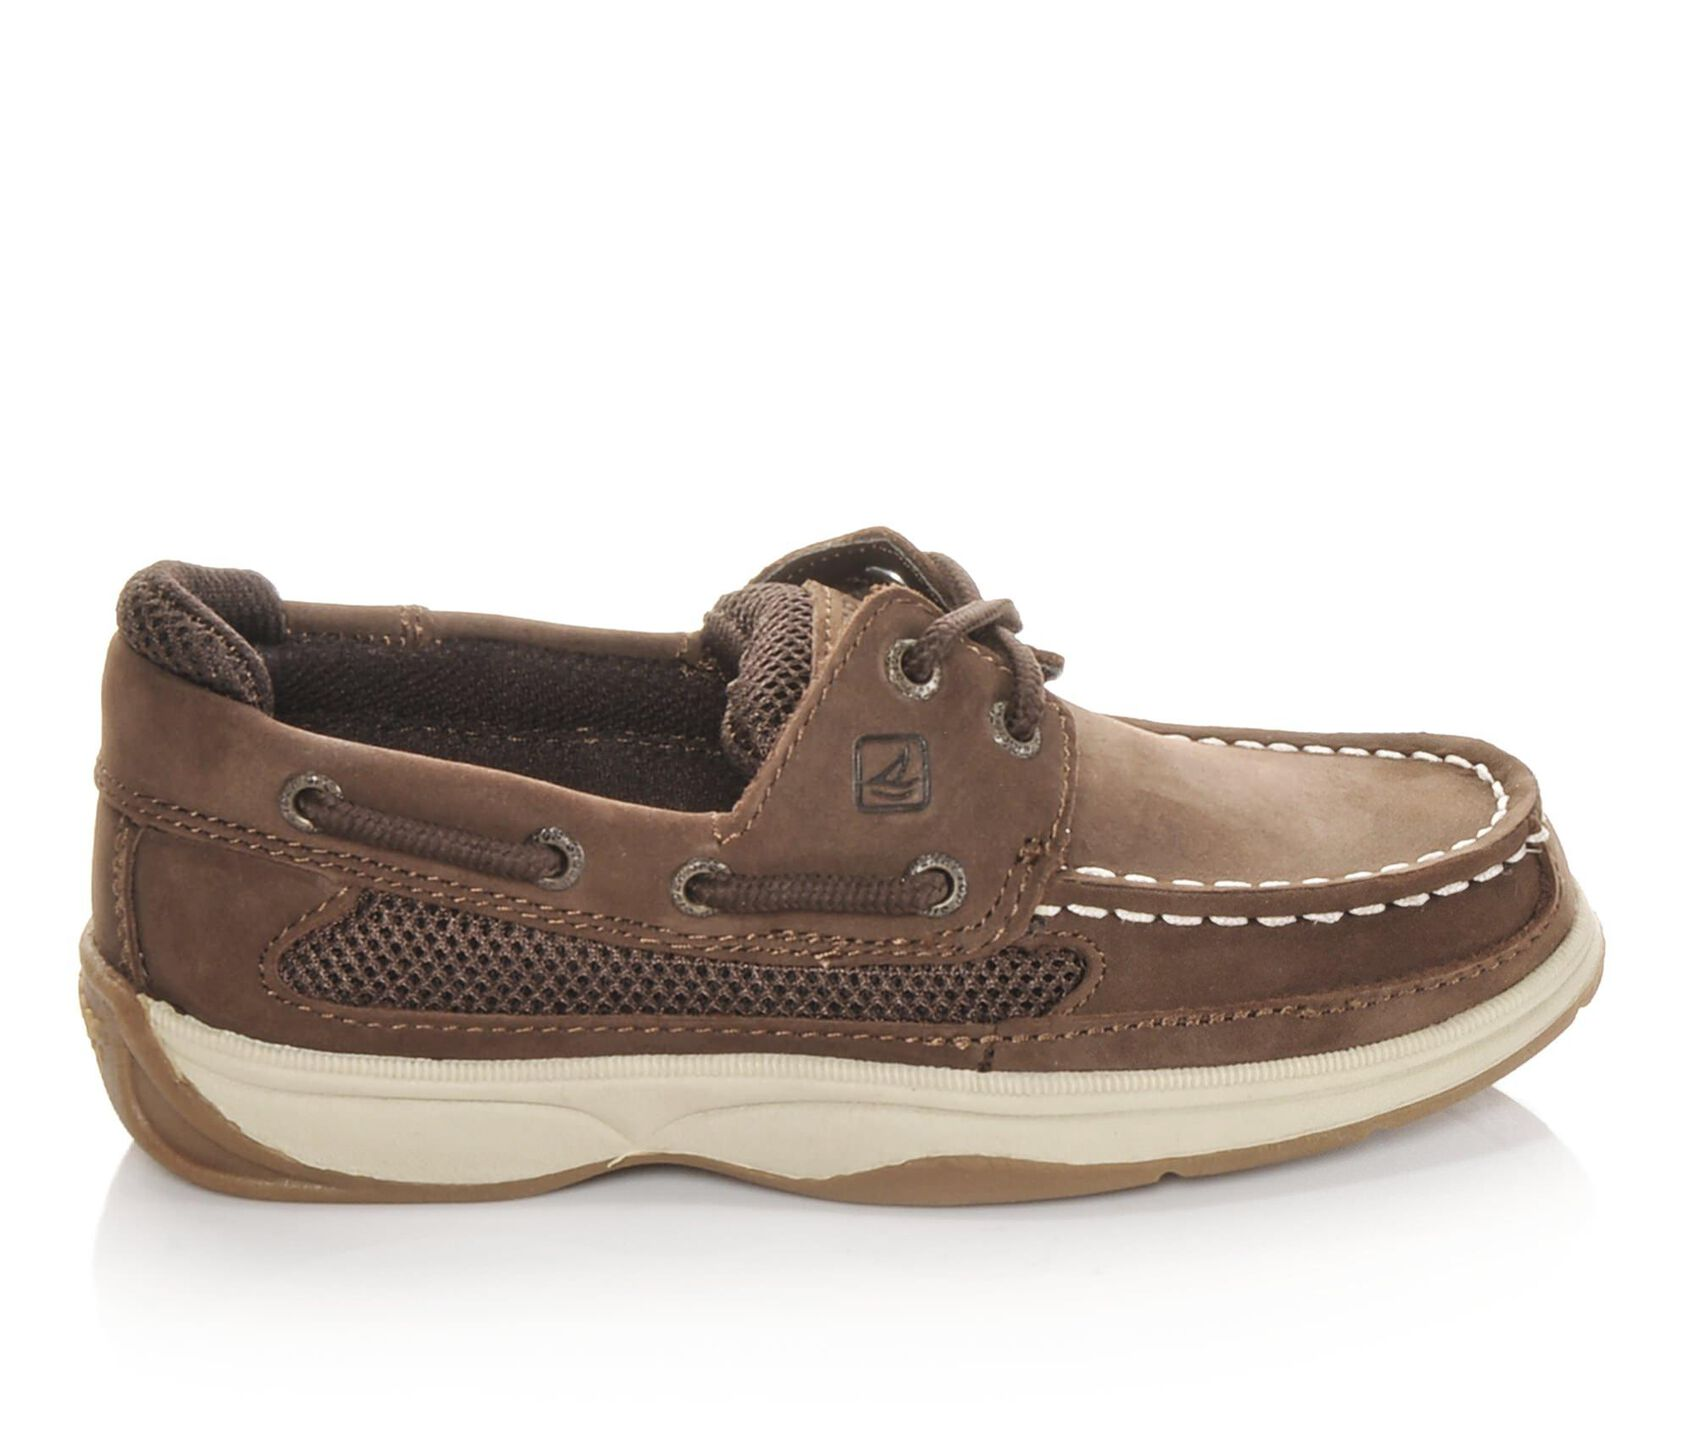 promo codes sale new release Boys' Sperry Little Kid & Big Kid Lanyard Boat Shoes